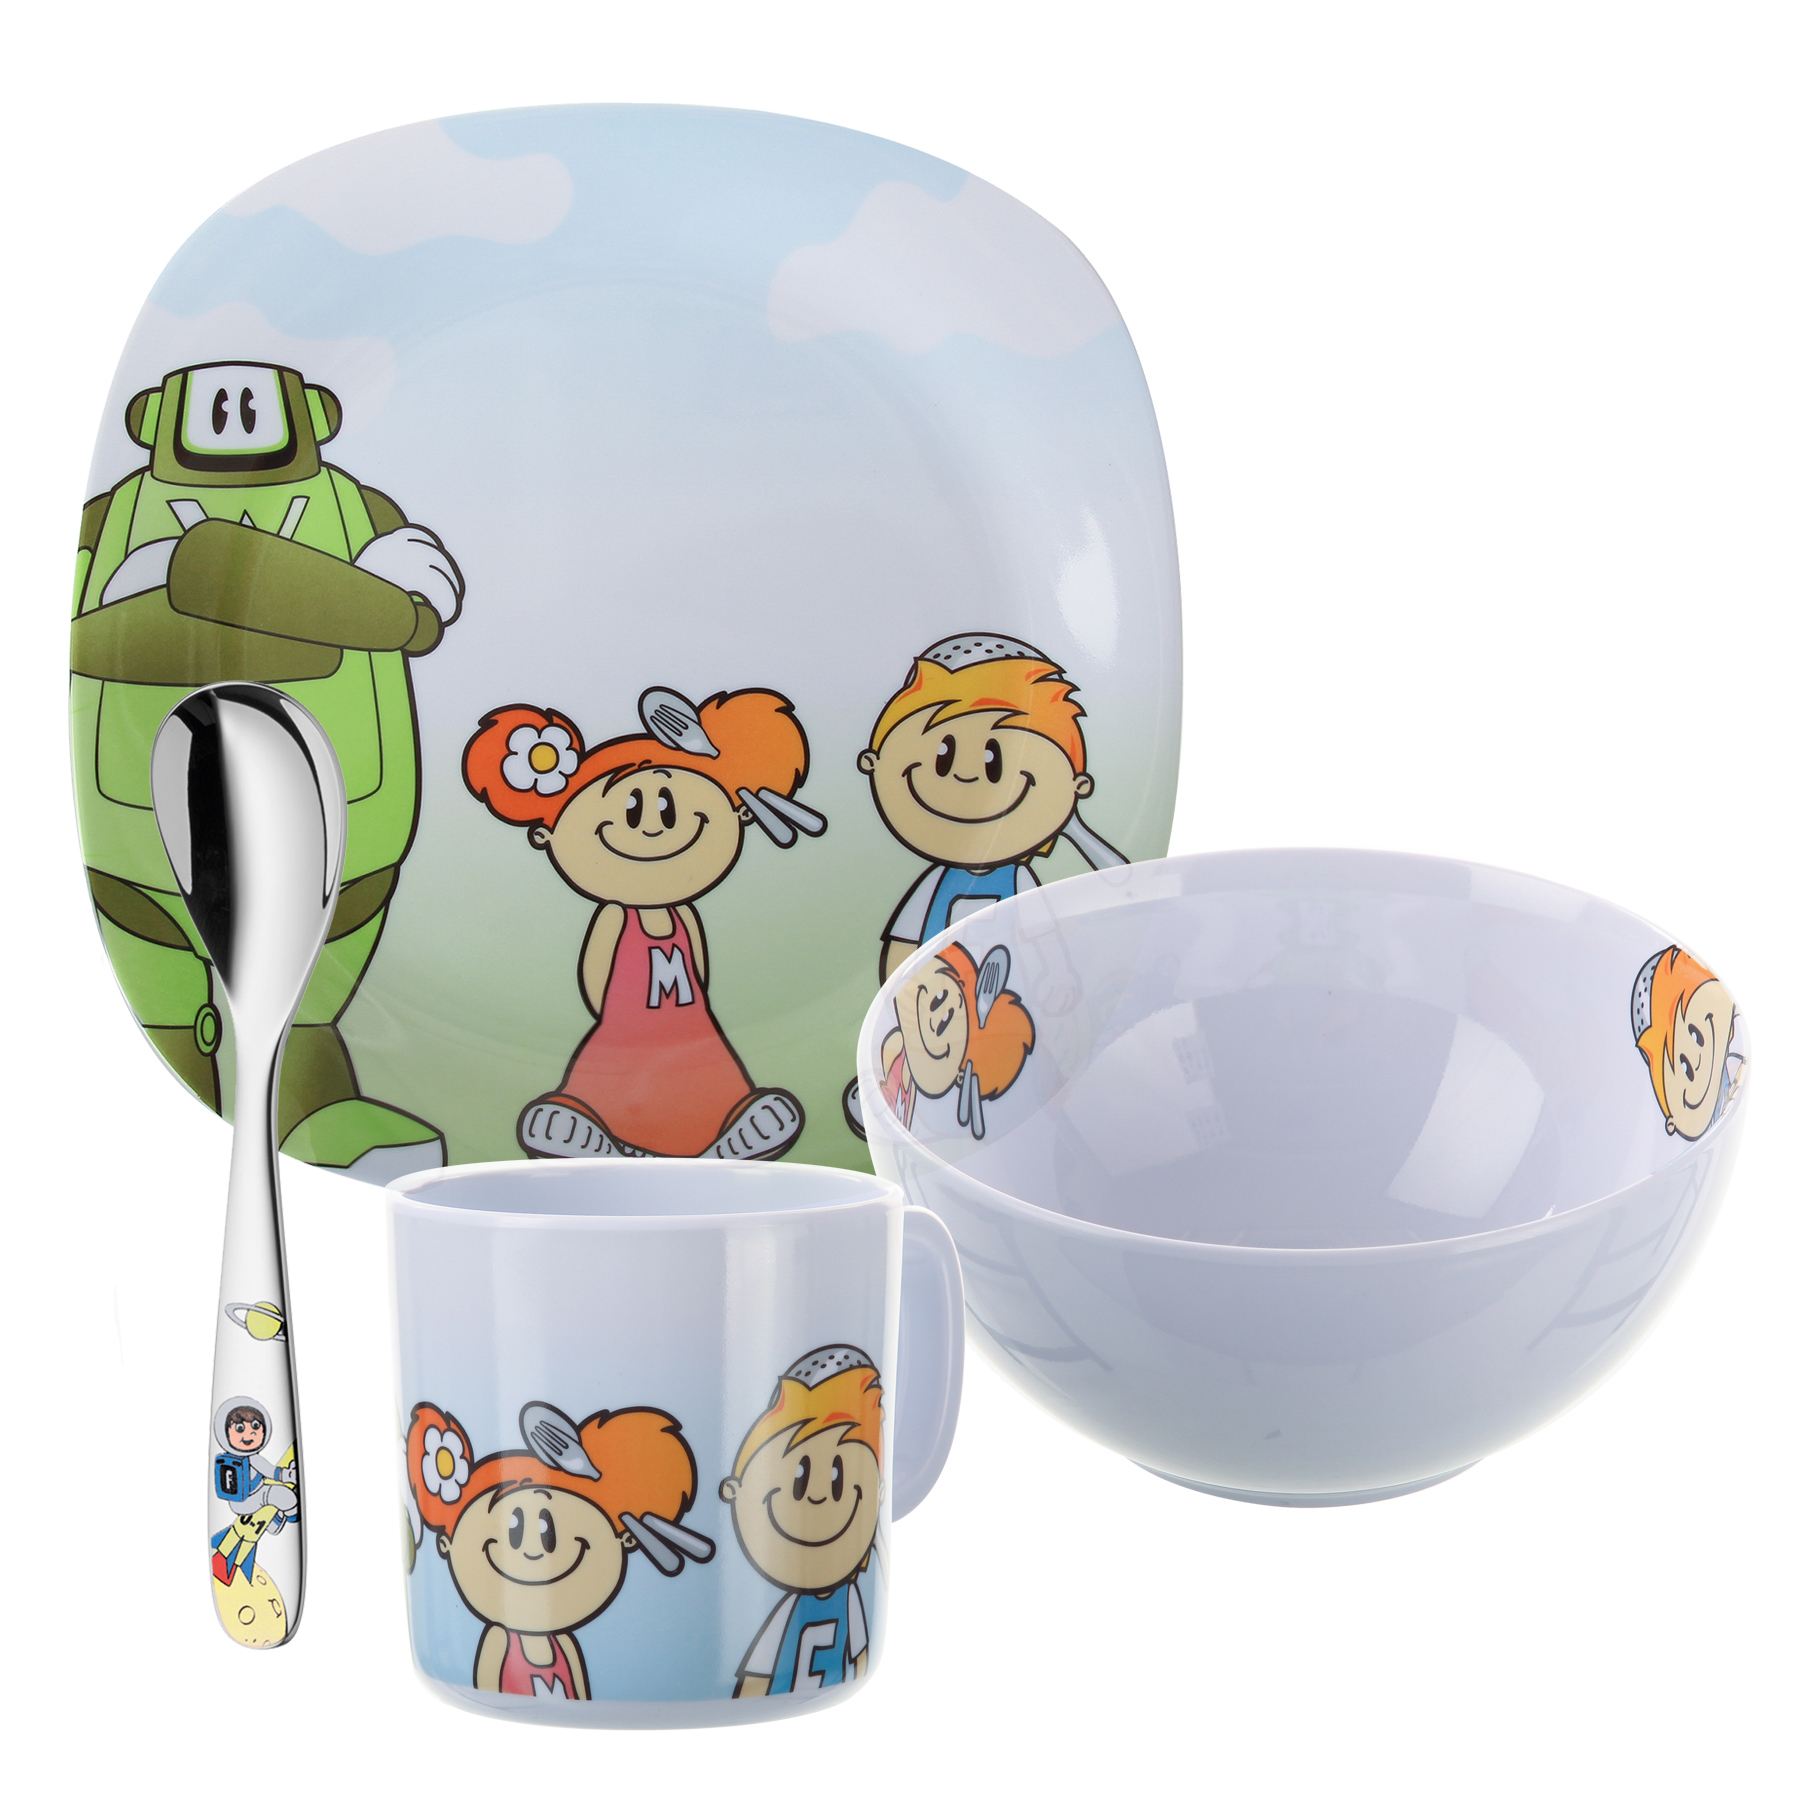 WMF WILLY MIA, FRED Set, 4-teilig Bild https://cdn03.plentymarkets.com/zsy4vjx32p87/item/images/5196/full/4260405284580-01-neu.jpg